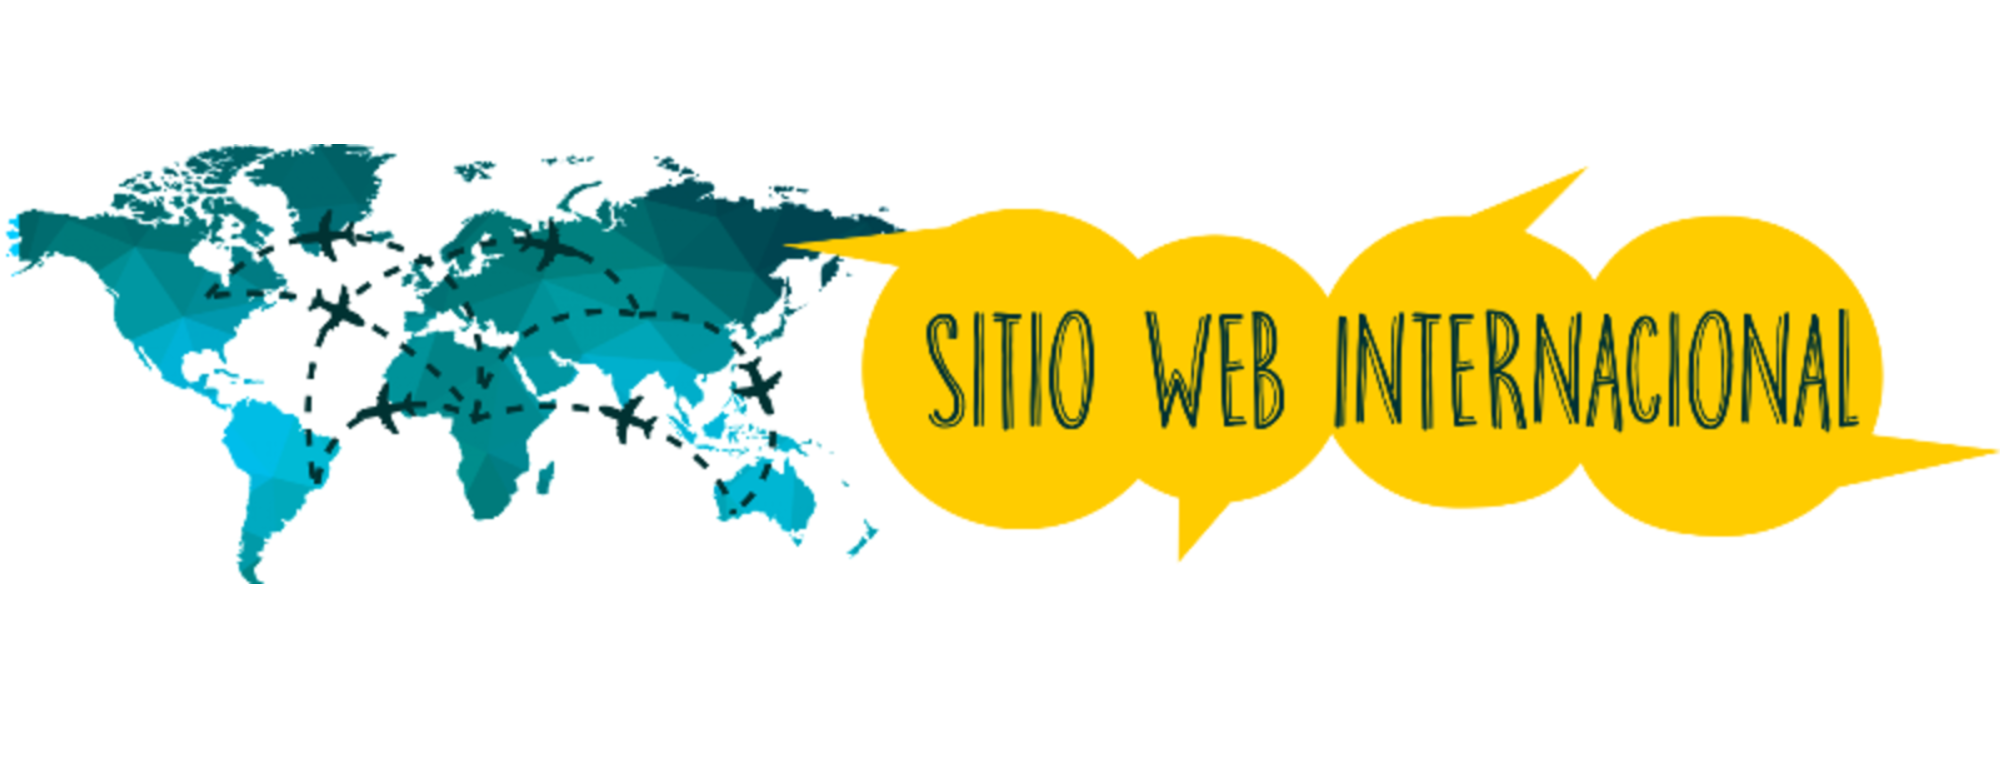 Sitio Web Internacional